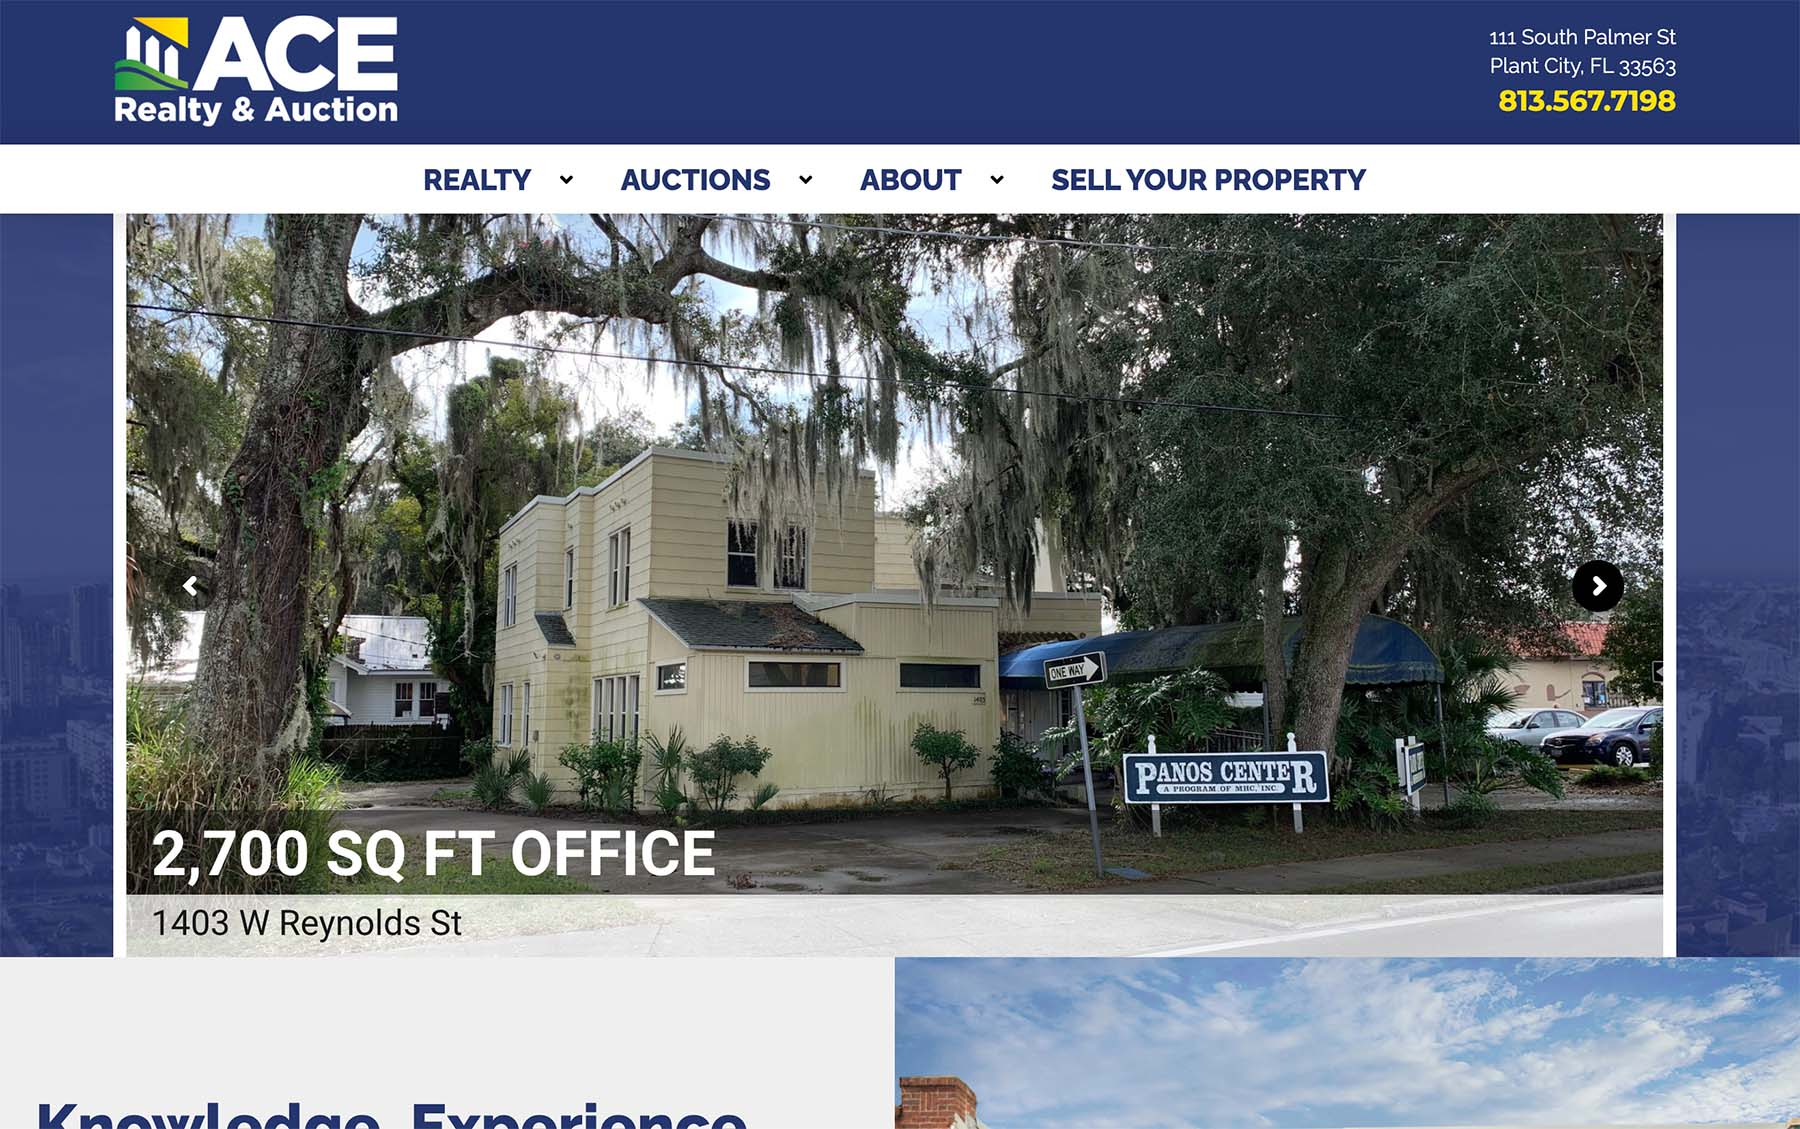 """Featured image for """"Ace Realty"""""""